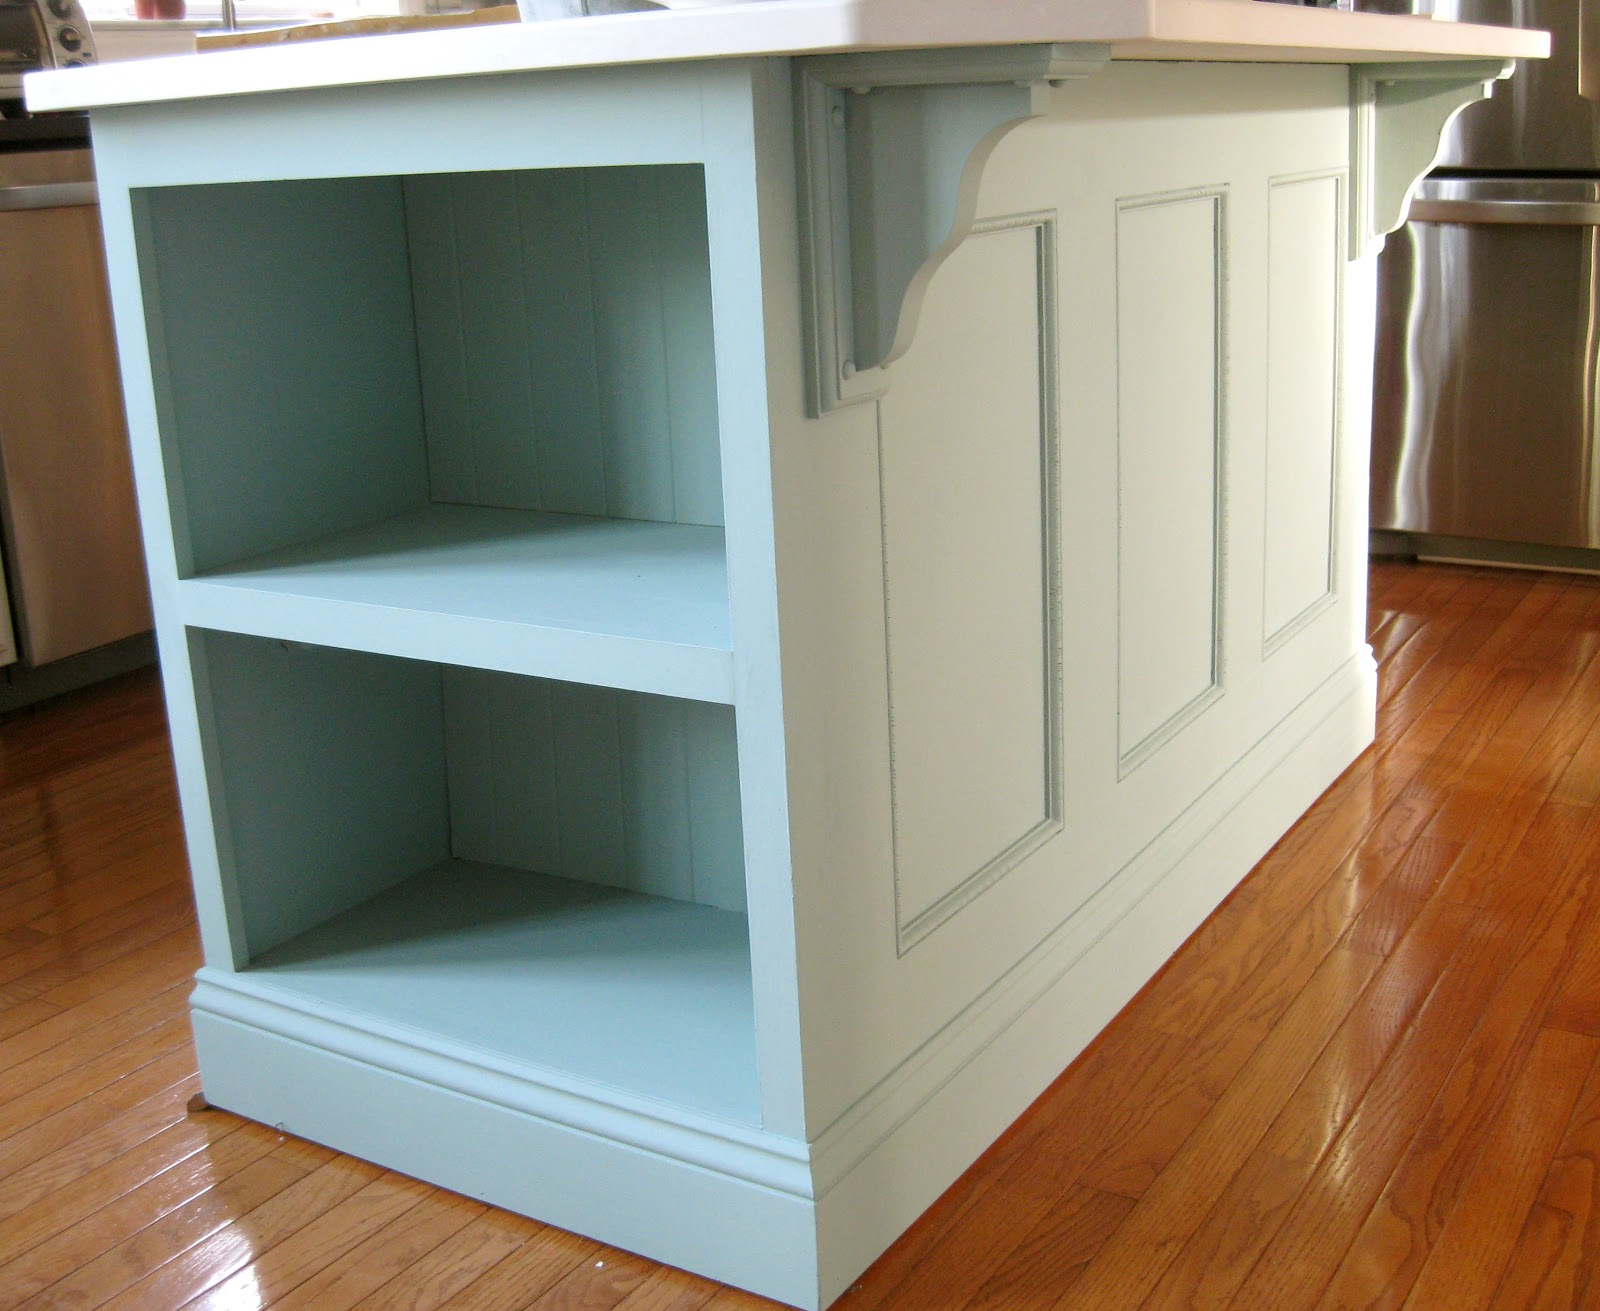 Kitchen island painted ascp duck egg blue remodelando la for Duck egg blue kitchen island